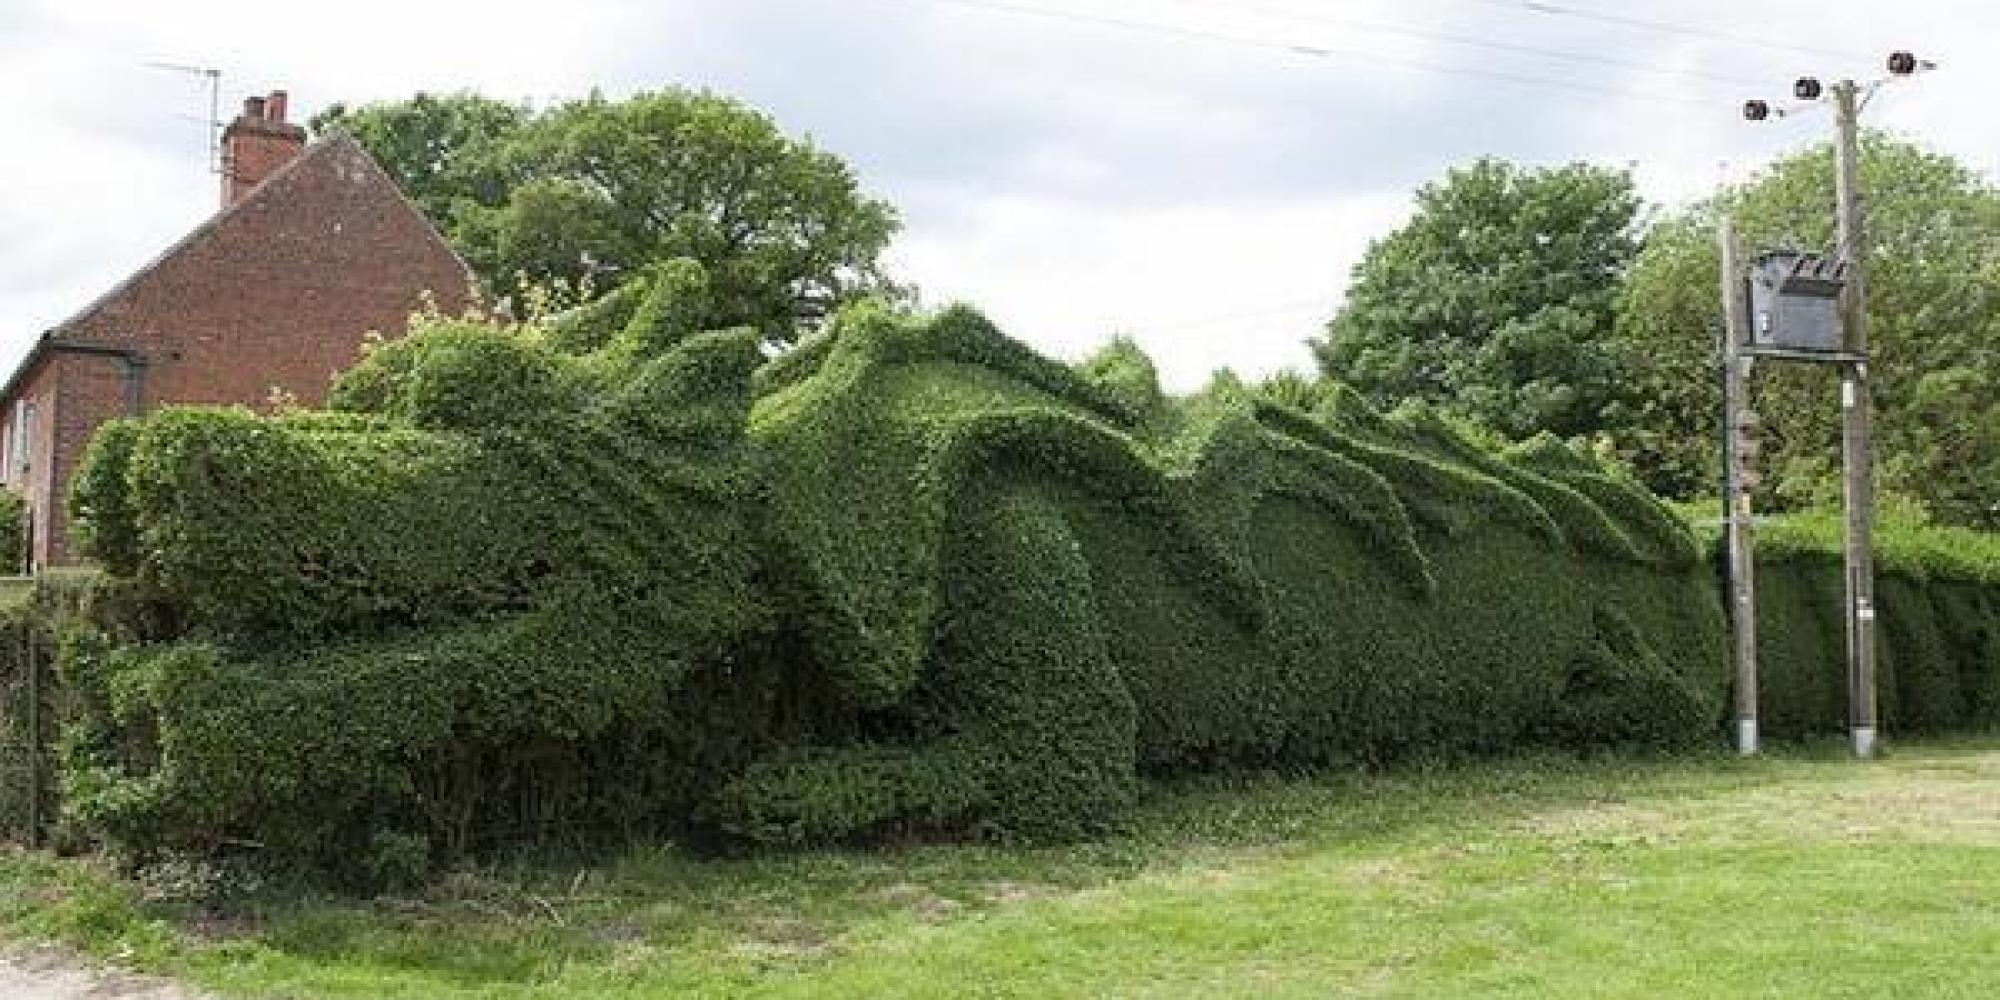 75 Year Old Transforms Boring Hedge Into Giant Dragon